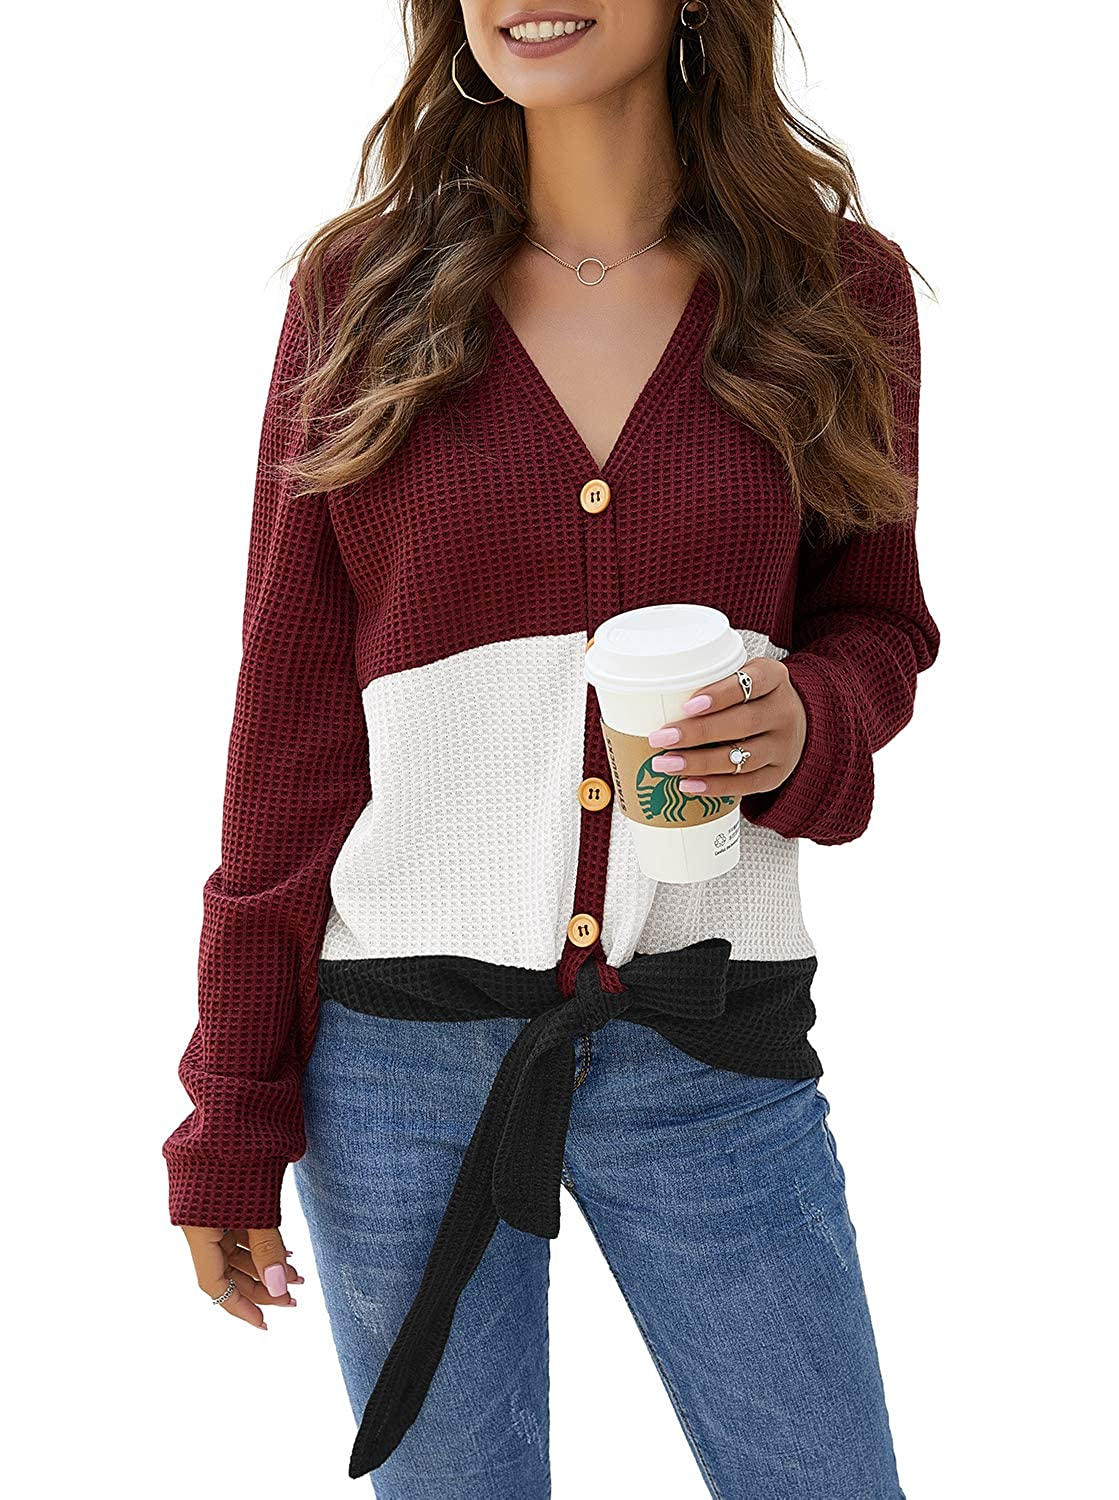 ZJCTUO Womens Tops Long Sleeved Patchwork Color Block Tie Knot V Neck Button Down Cardigan Loose Fit Waffle Knit Tunic Jumpers